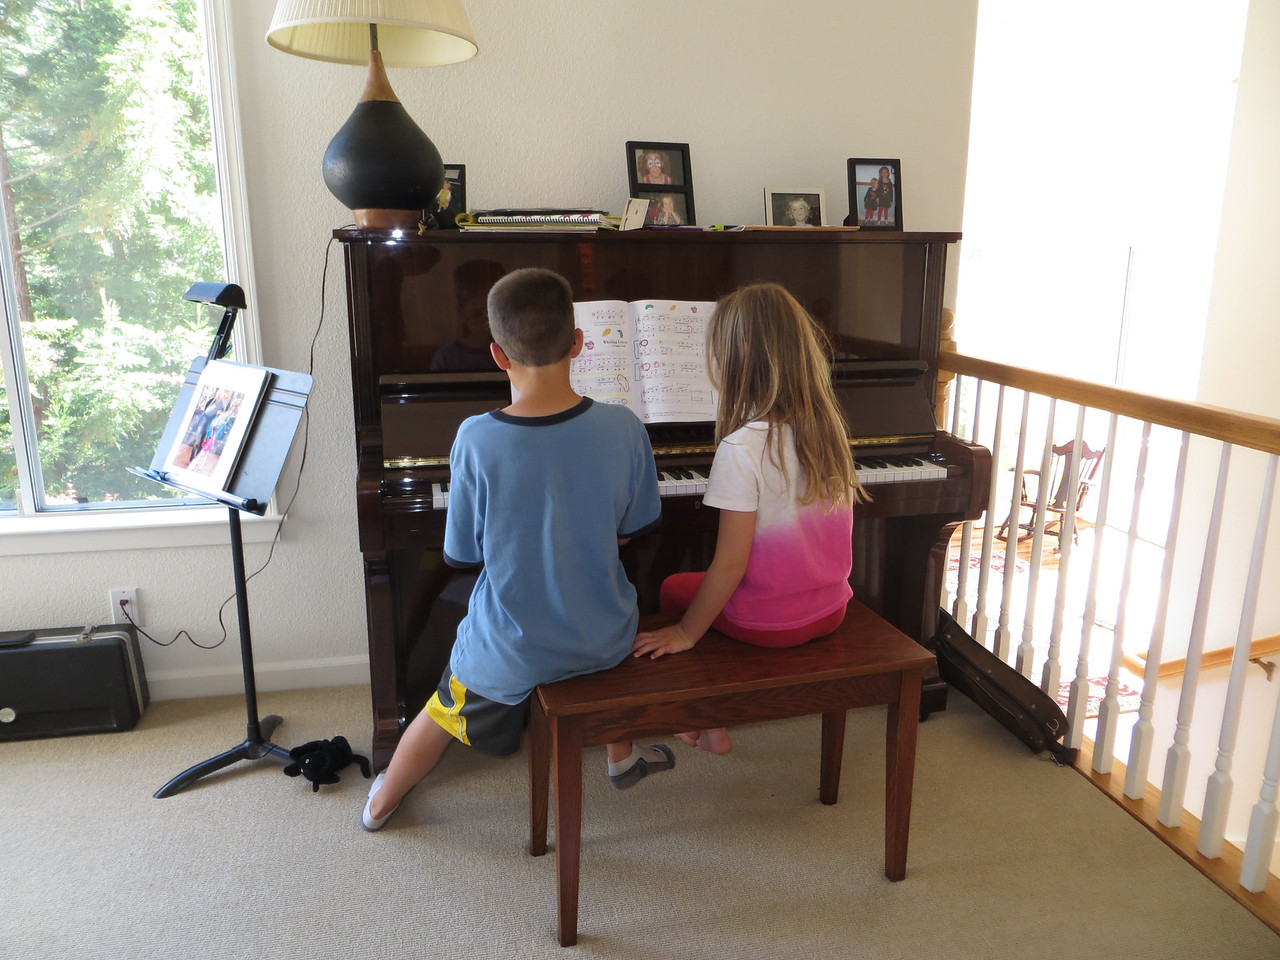 Austin and Sofia playing the piano